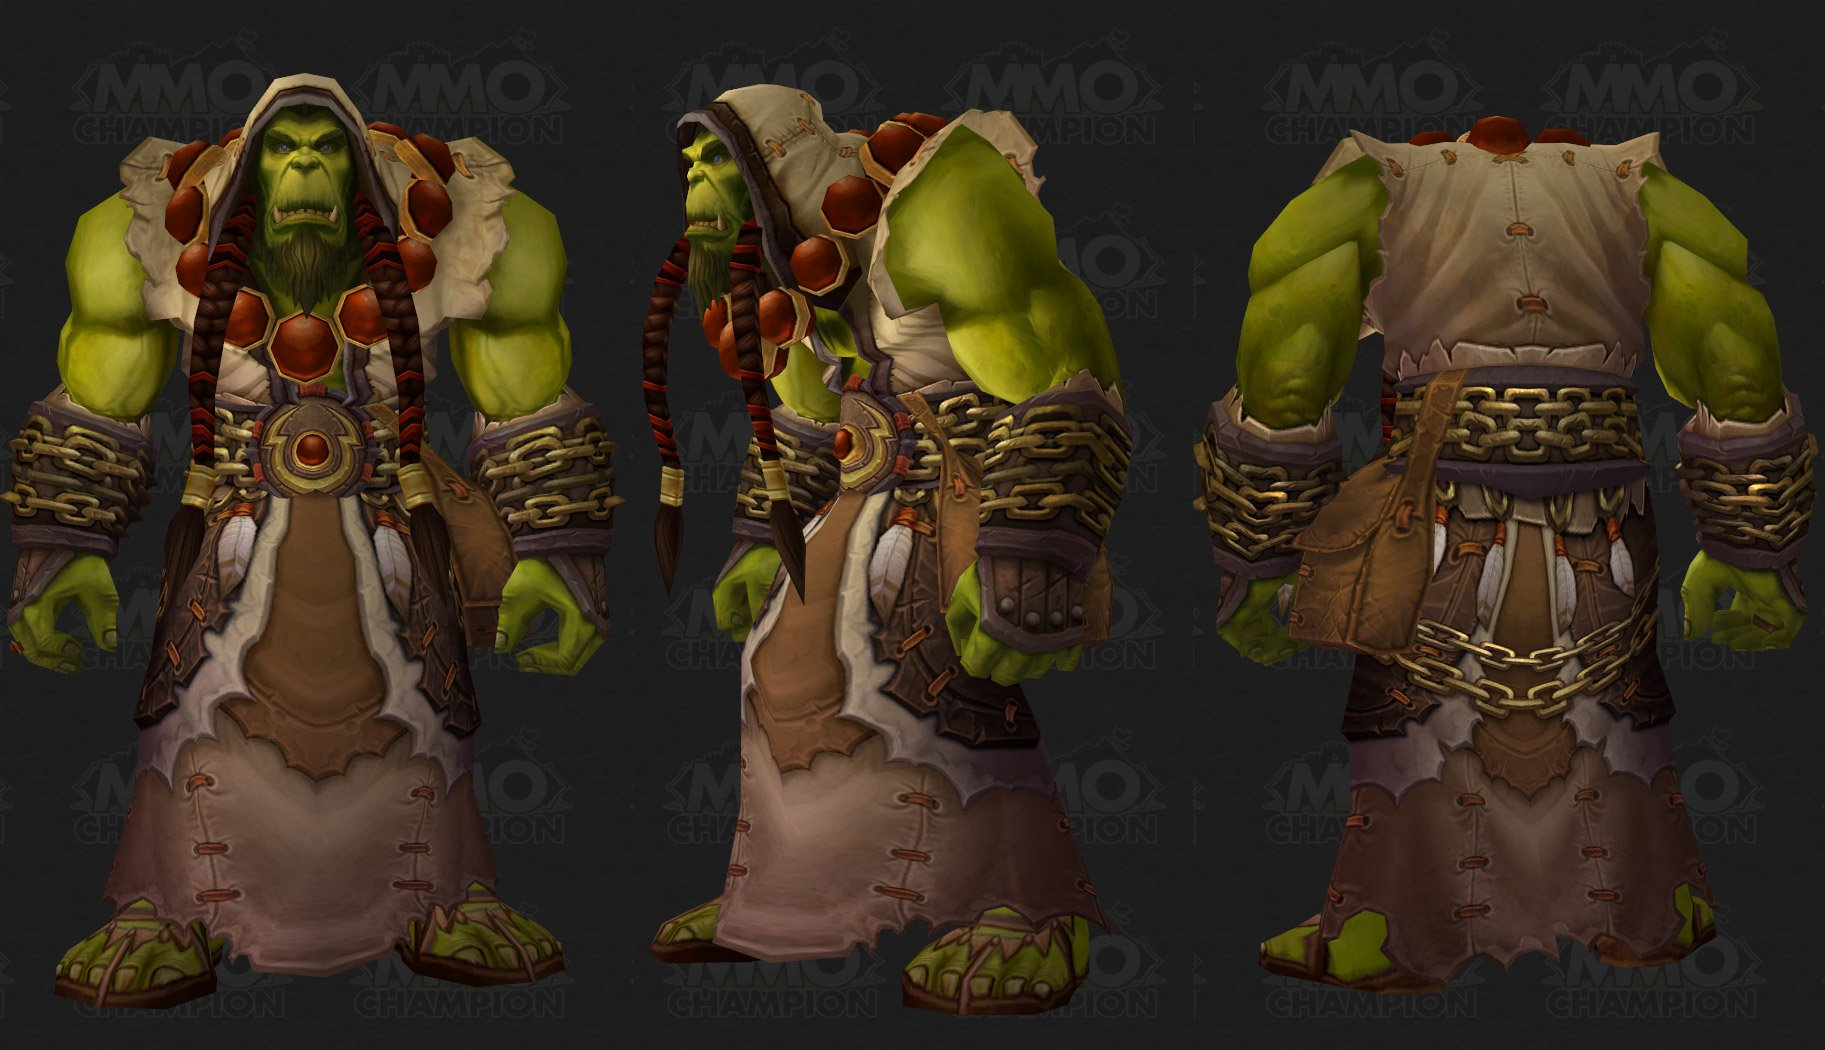 warcraft thrall wow - photo #18